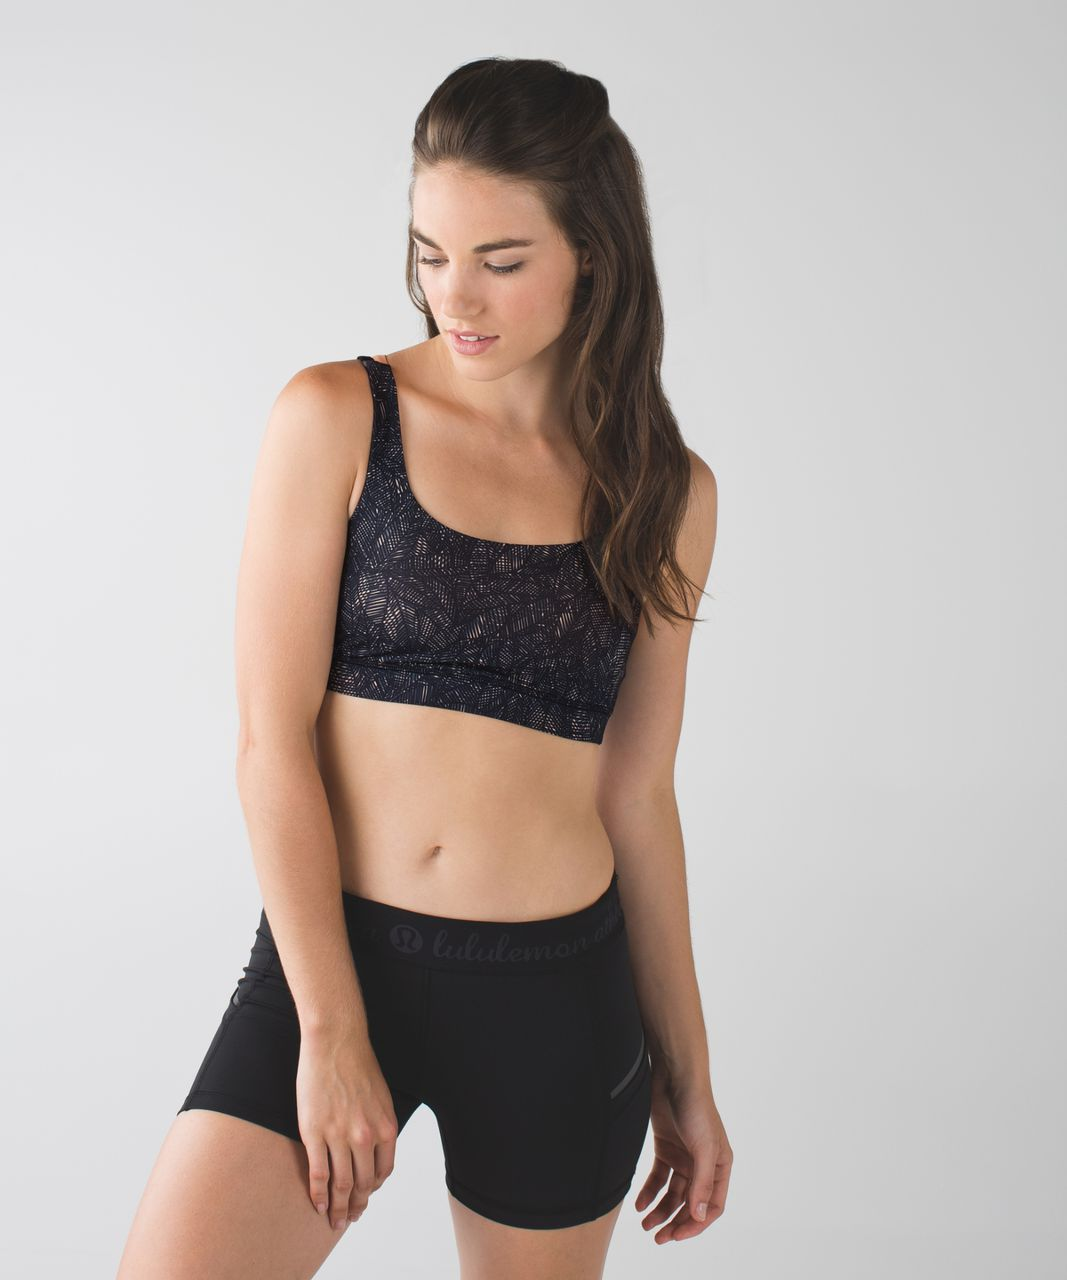 Lululemon Energy Bra - Jazzy Peach Fuzz Naval Blue / Black / Peach Fuzz